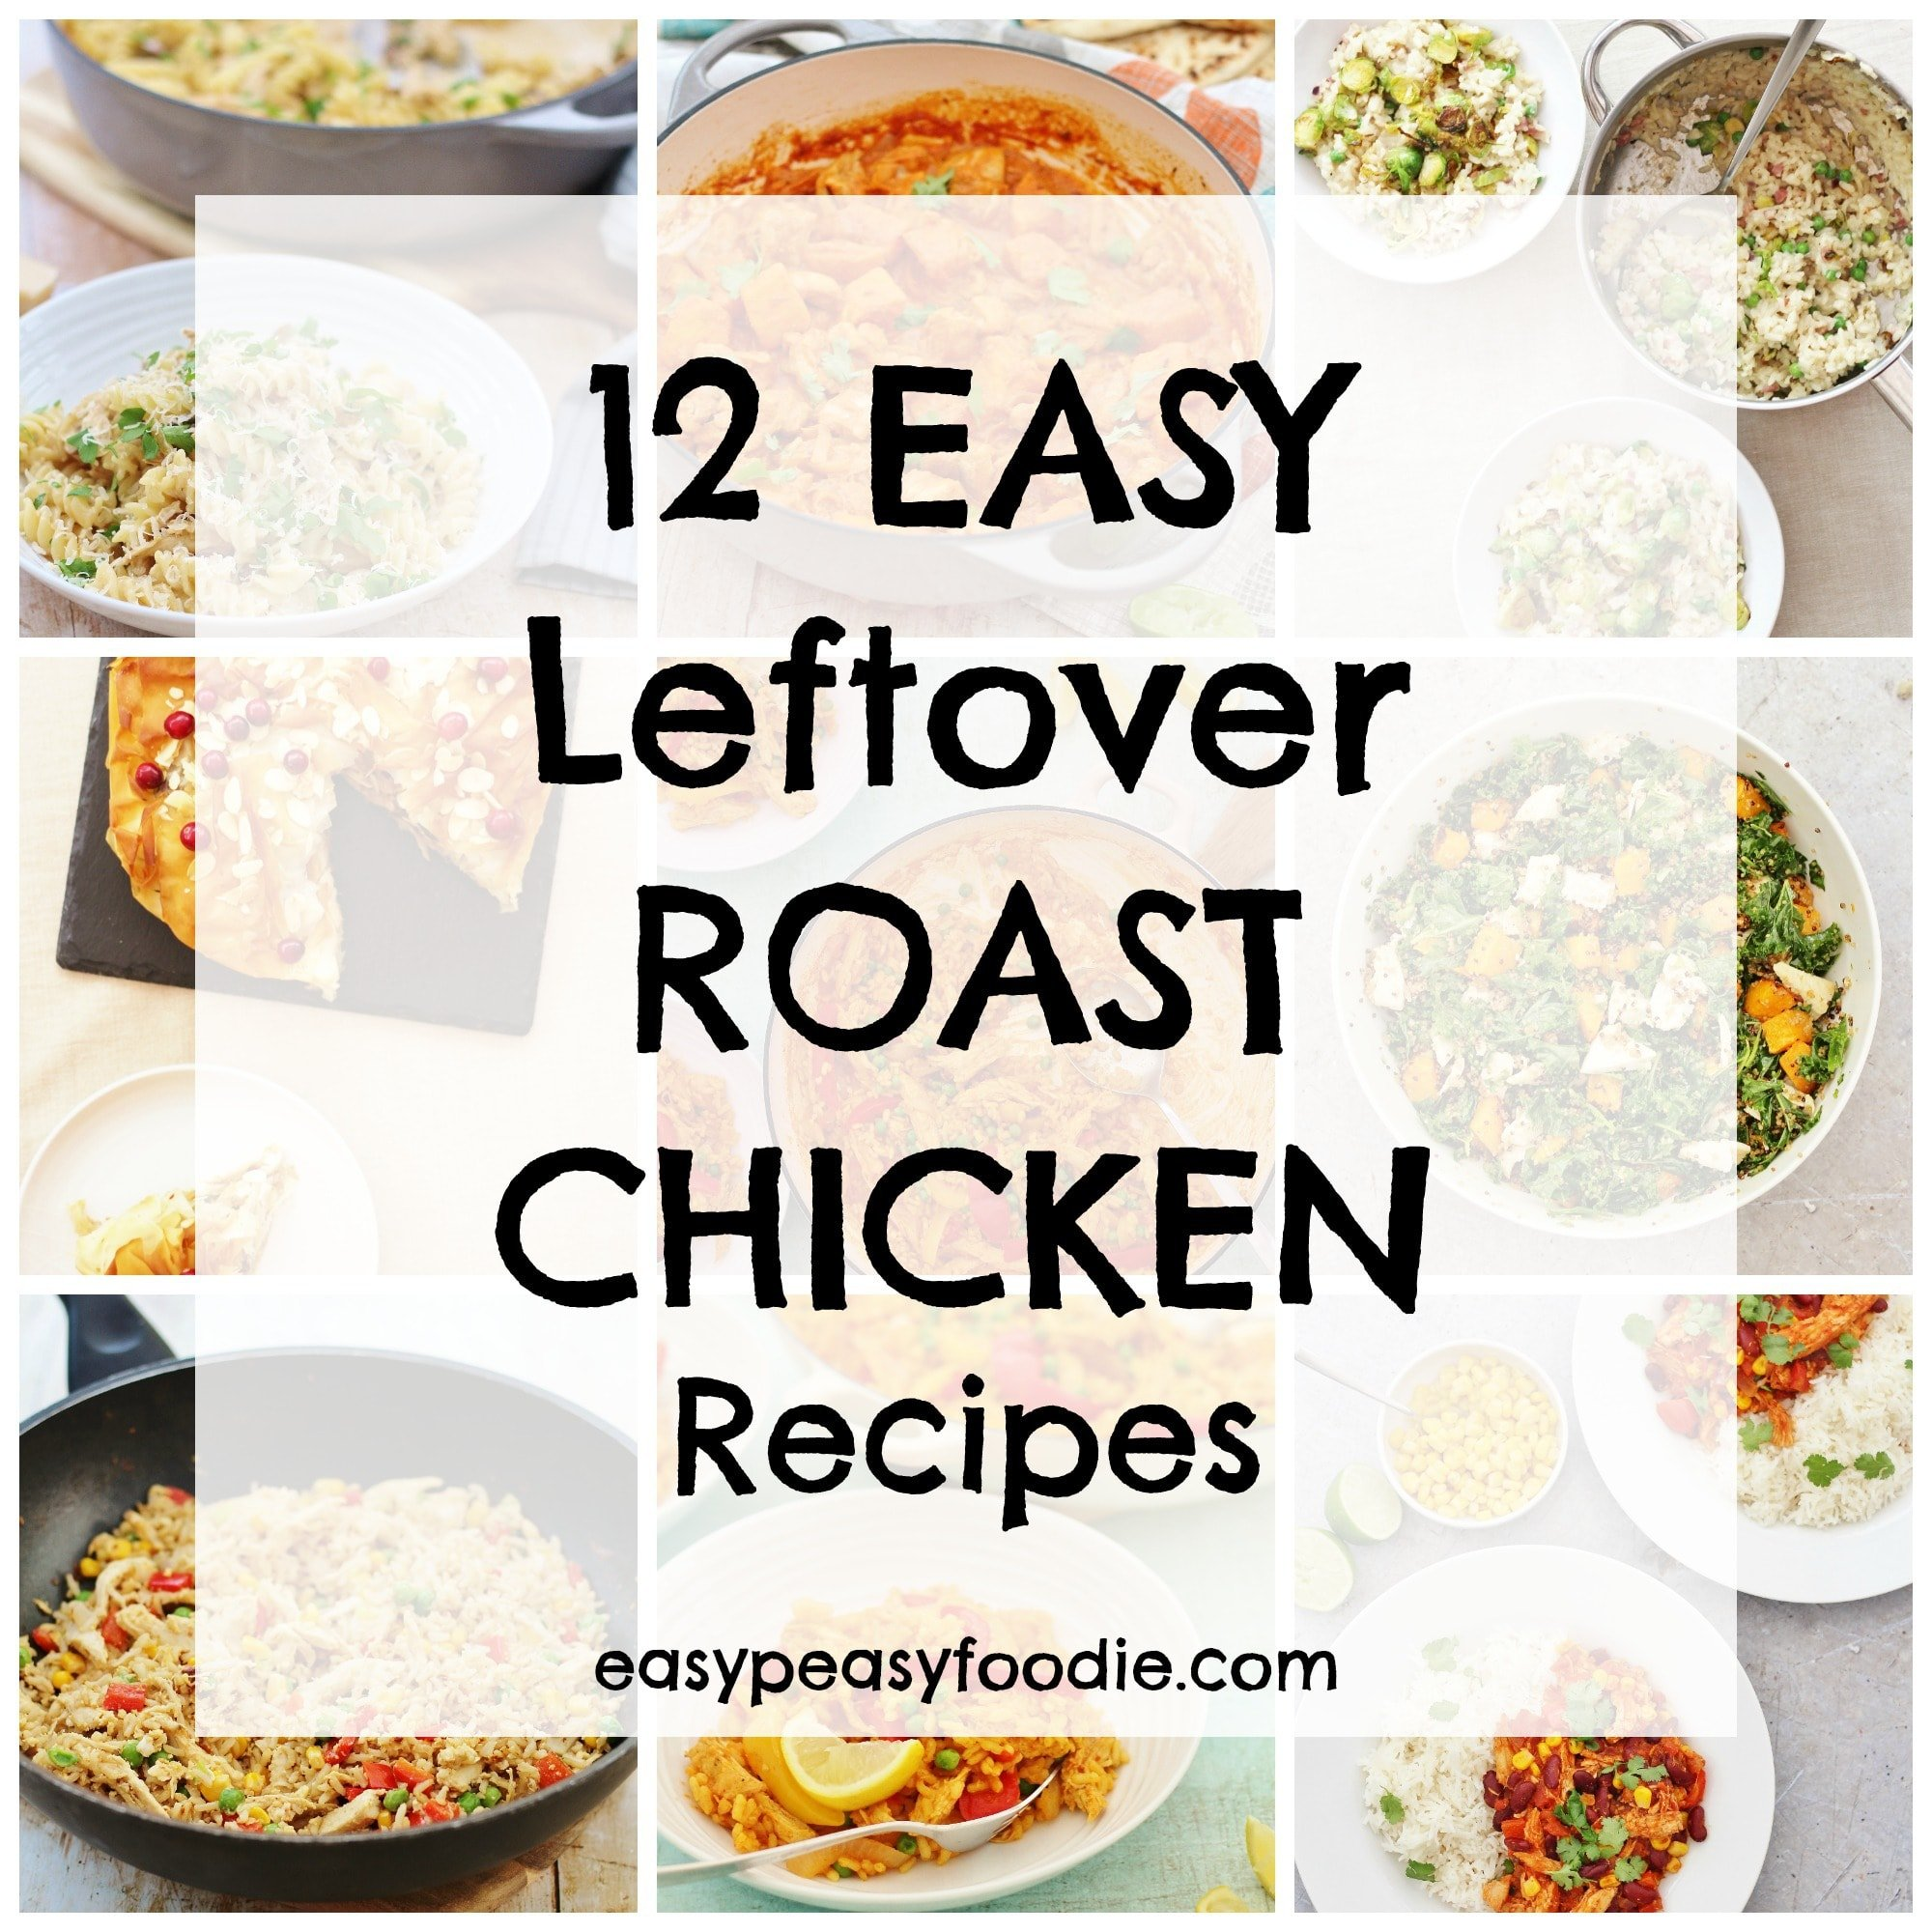 12 Easy Leftover Roast Chicken Recipes Easy Peasy Foodie